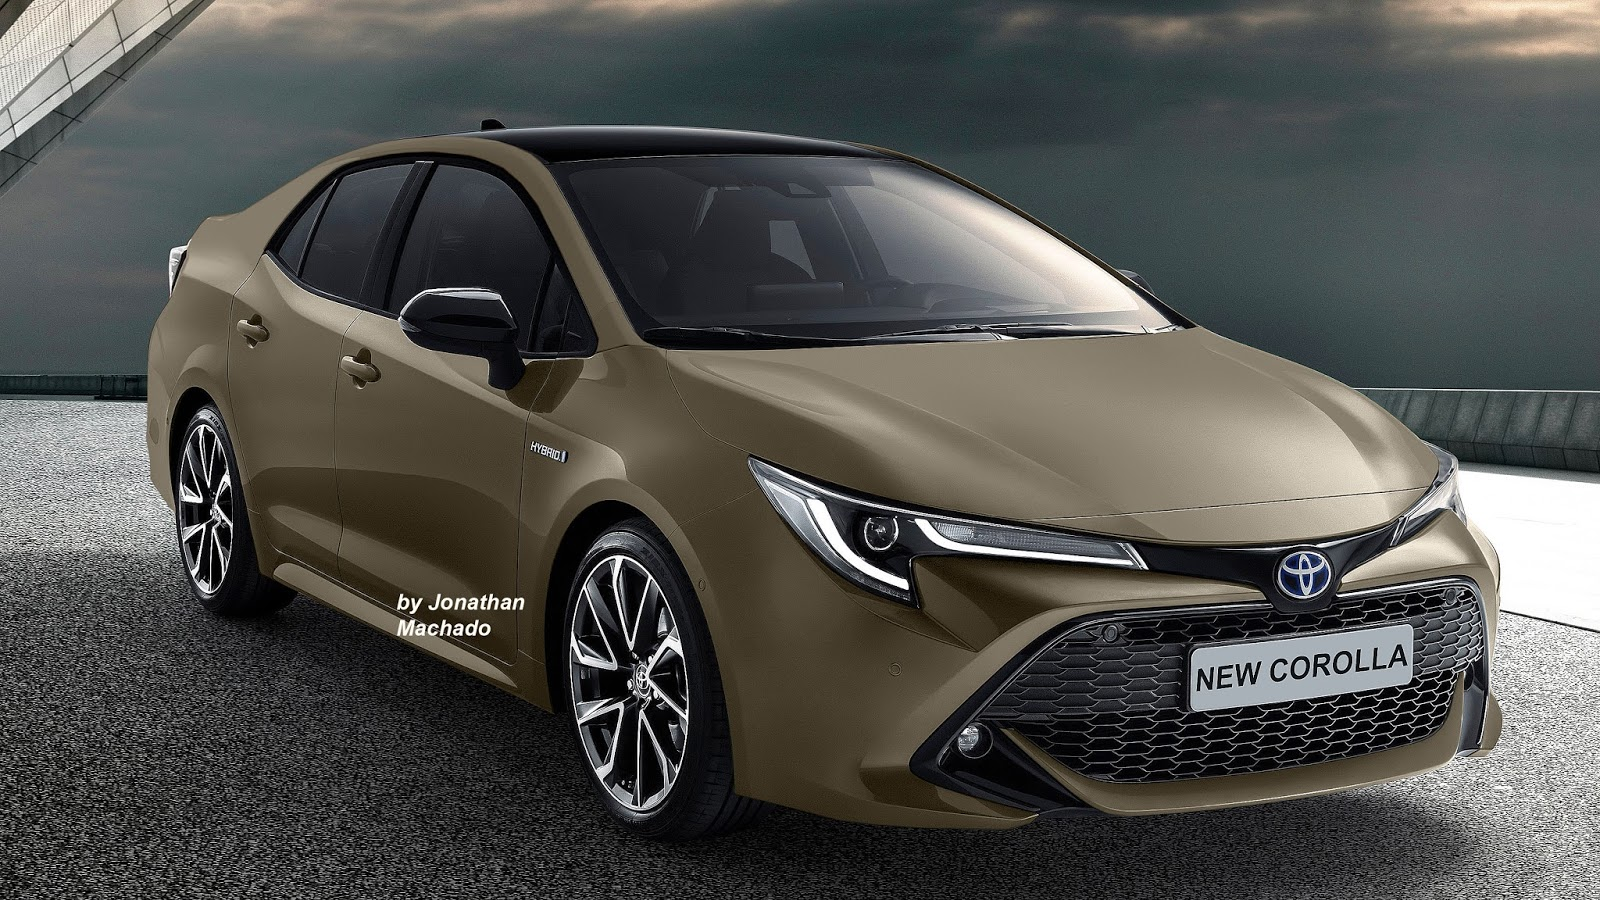 renderings next generation toyota corolla imagined carspiritpk. Black Bedroom Furniture Sets. Home Design Ideas